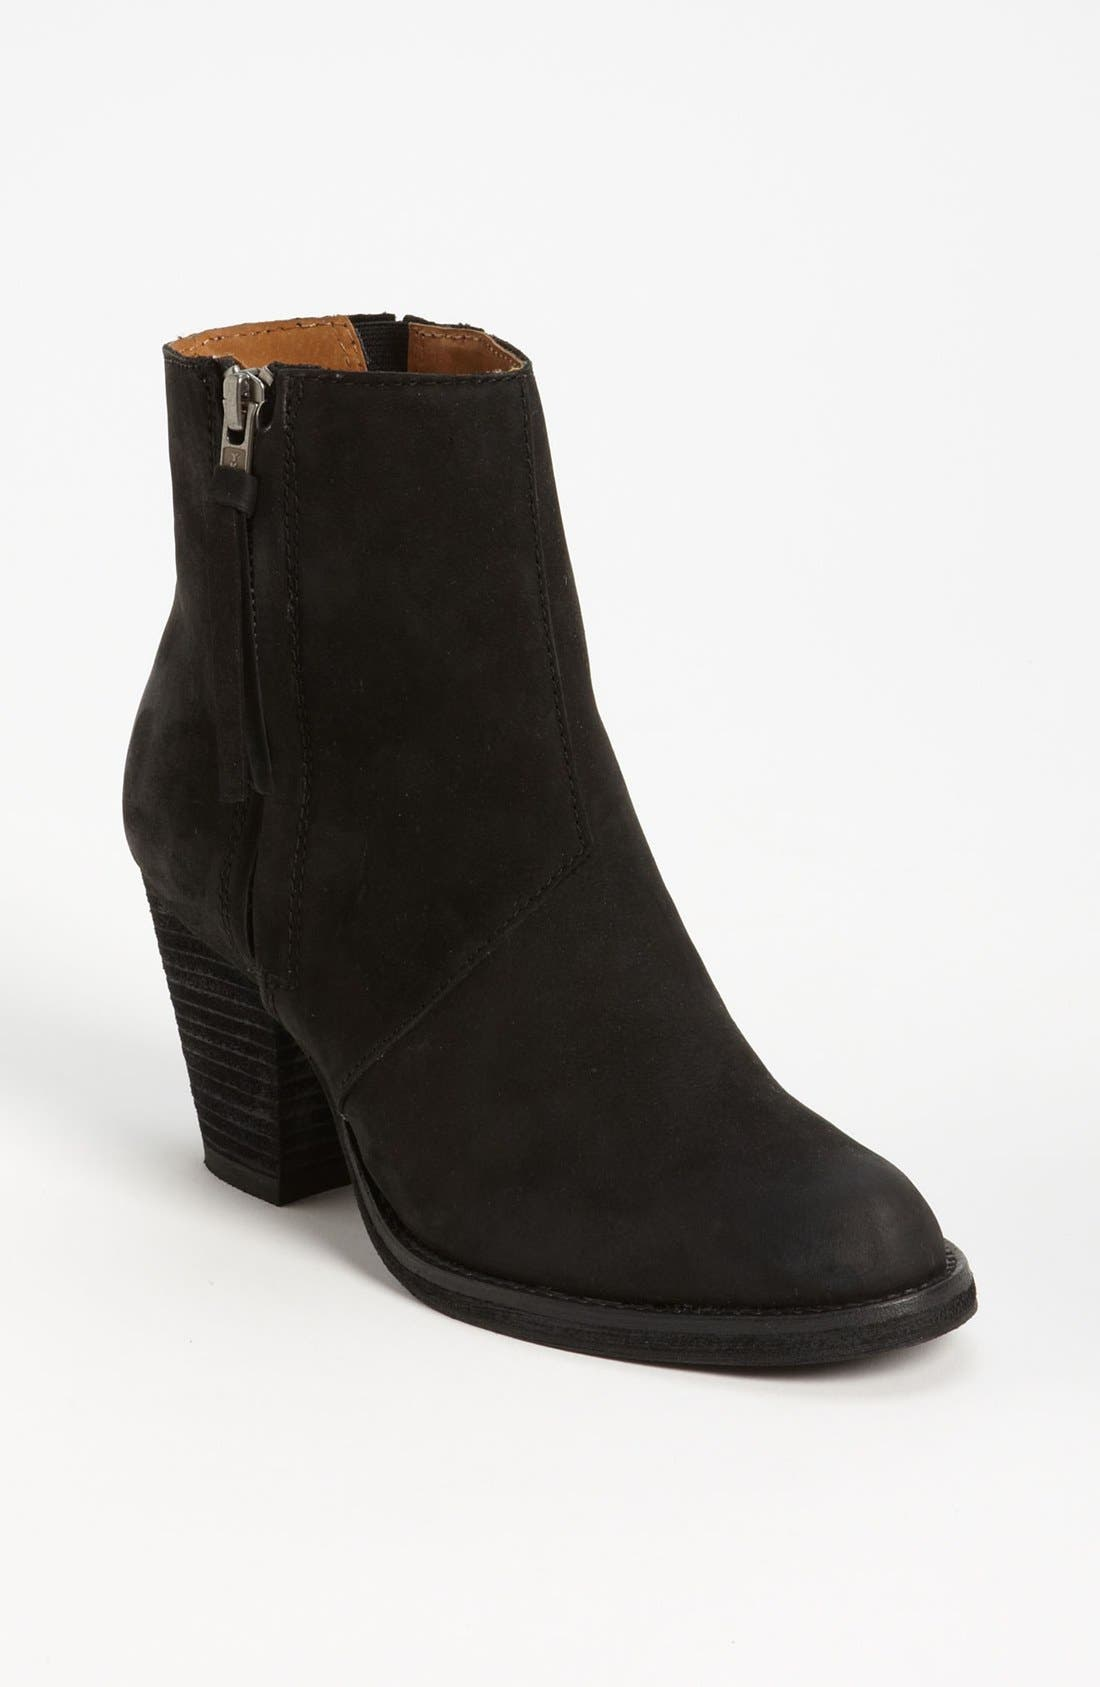 Alternate Image 1 Selected - Steve Madden 'Paradoxx' Bootie